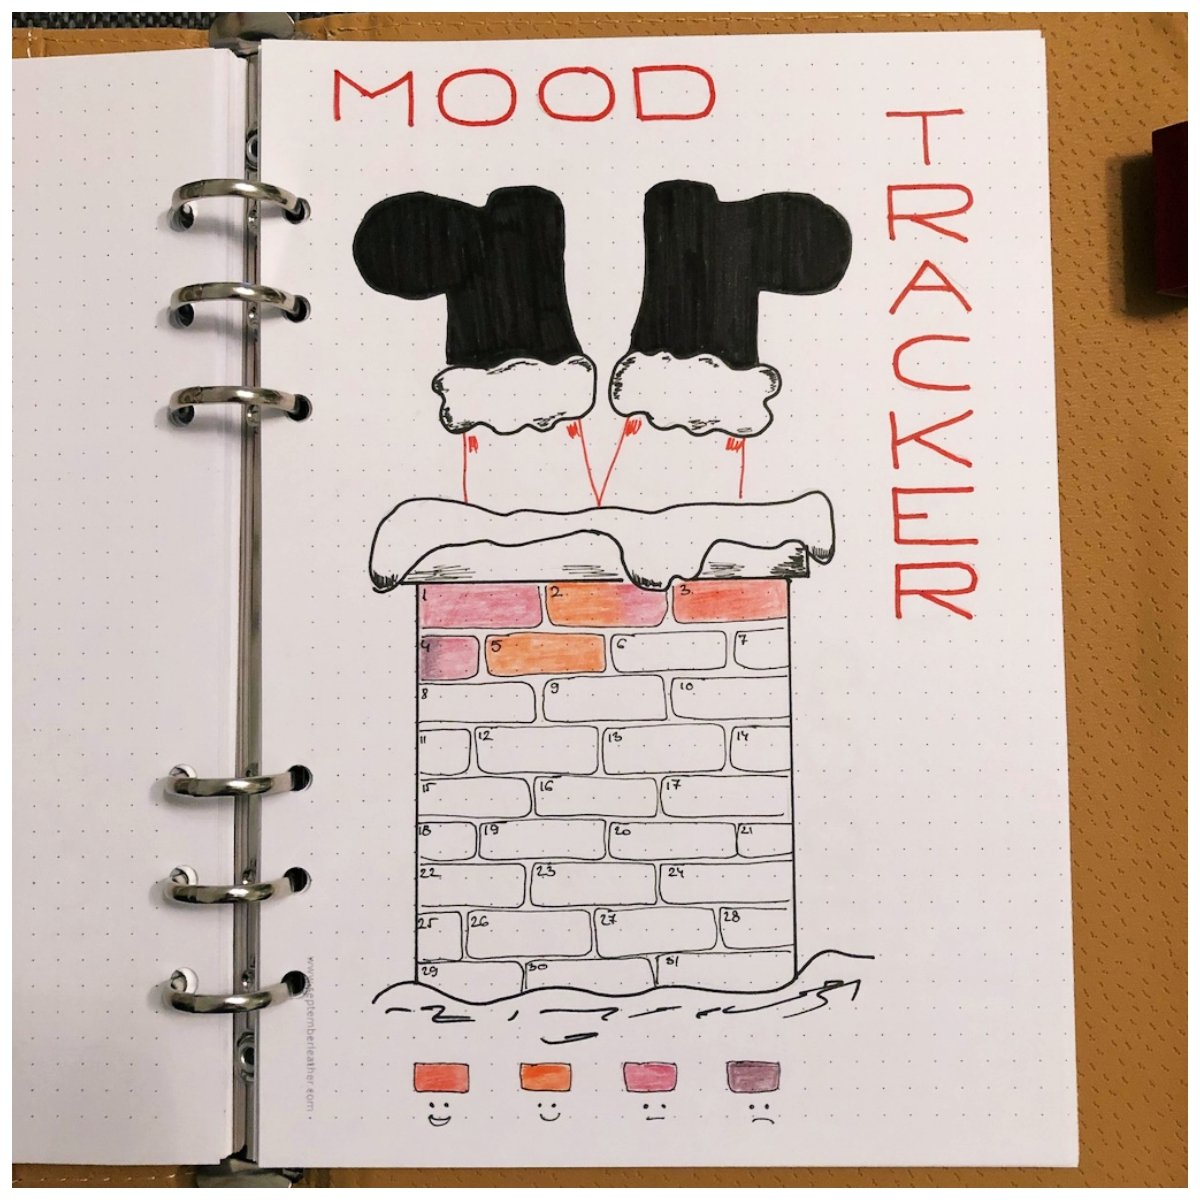 Santa Claus Mood Tracker for your Bullet Journal - itstartswithacoffee.com #bulletjournal #bujo #tracker #moodtracker #santaclaus #chimney